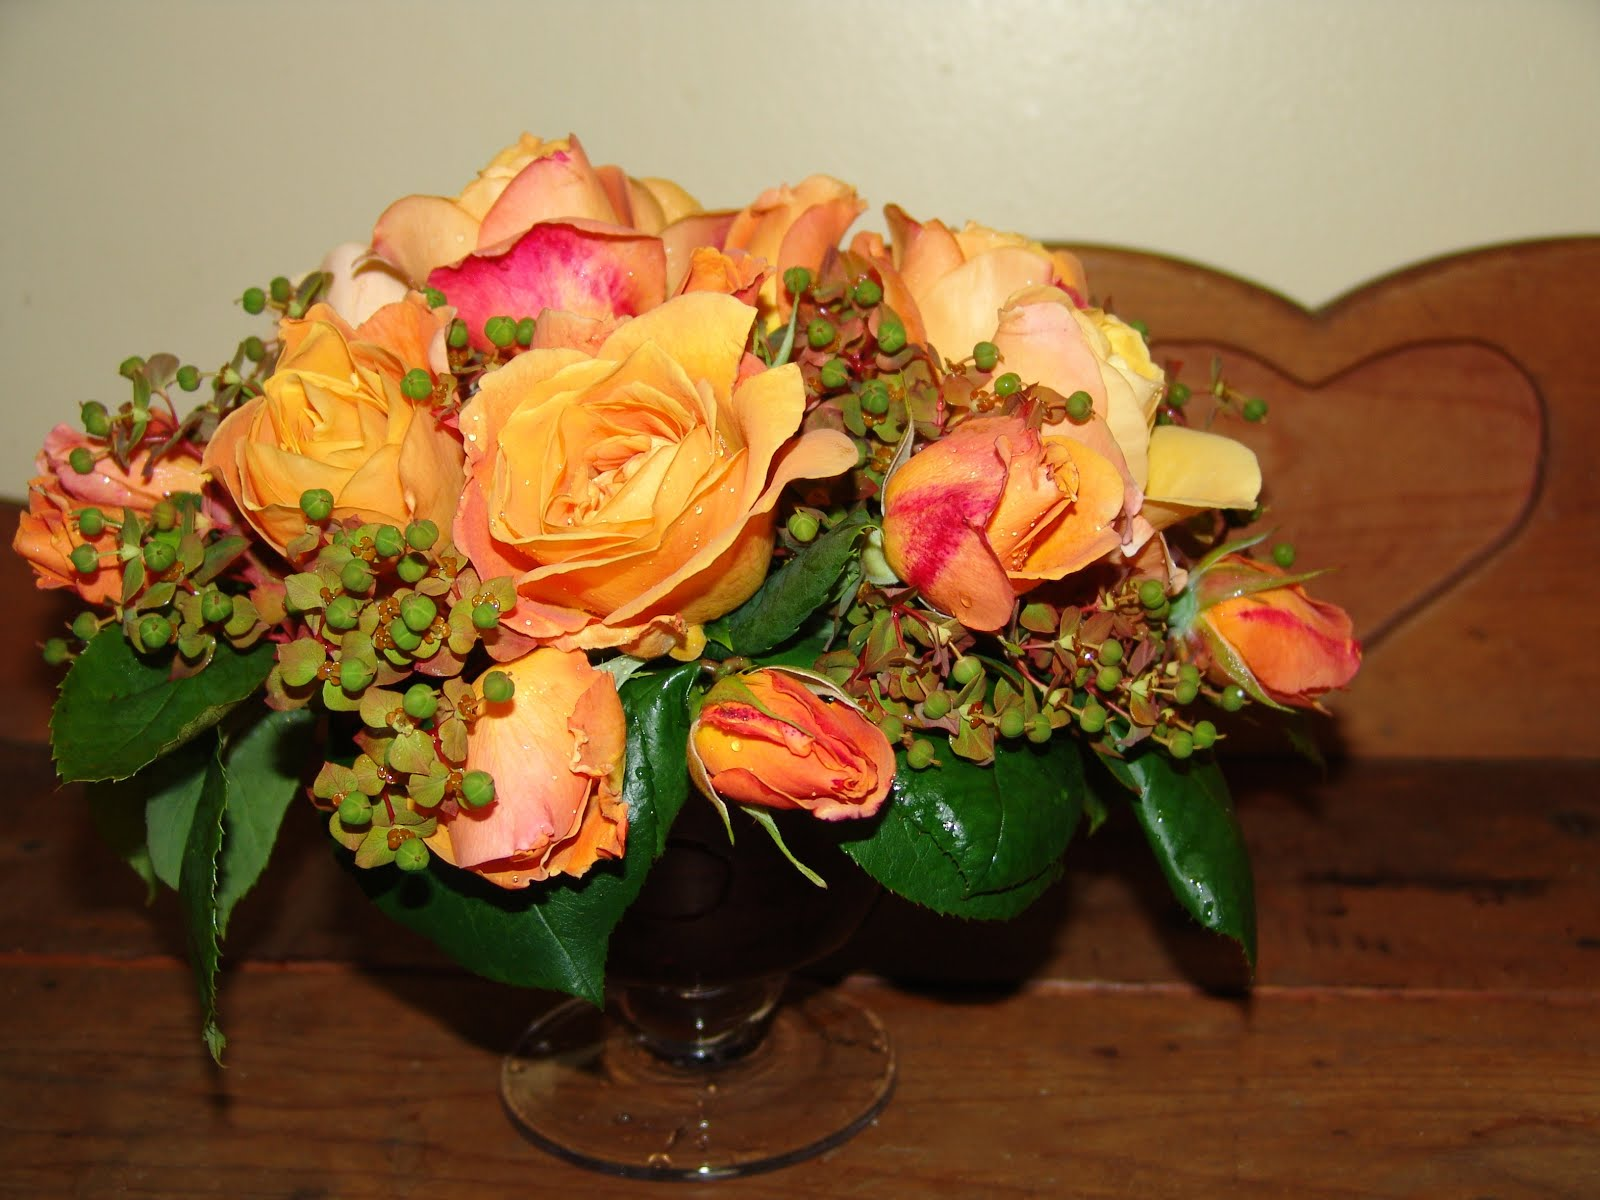 Sitkavores flowers roses honey perfume roses make up quite the bouquet if i remember correctly yellow roses represent friendship and joy in the language of flowers mightylinksfo